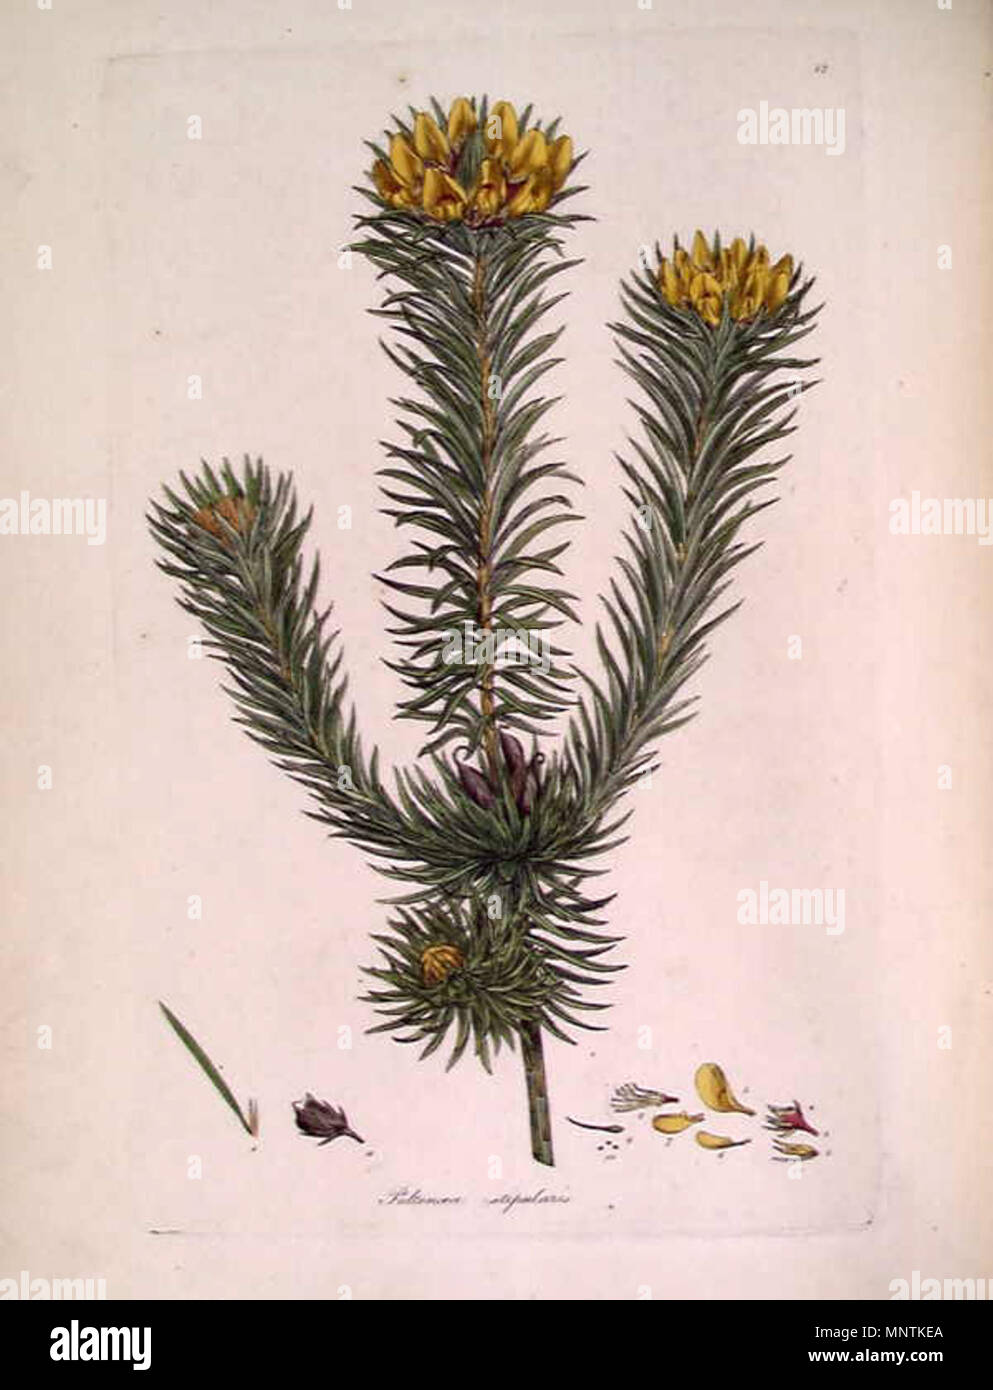 . This is an image of a print of a hand coloured engraving by James Sowerby (1757-1822), based on drawing nominally by John White but probably by the convict artist Thomas Watling. It appeared as Tab. XII in James Edward Smith's 1793 A Specimen of the Botany of New Holland. The plant depicted is Pultenaea stipularis. The accompanying text explains the figure thus: 1. A Leaf with its stipula. 2. Floral leaf and the stipula which accompanies it. 3. Calyx. 4. Its appendages. 5. Standard. 6. A Wing. 7. Keel. 8. Stamina and Pistillum. 9. Pistillum alone. 10. Rudiments of Seeds. 11. Pod inverted wit Stock Photo